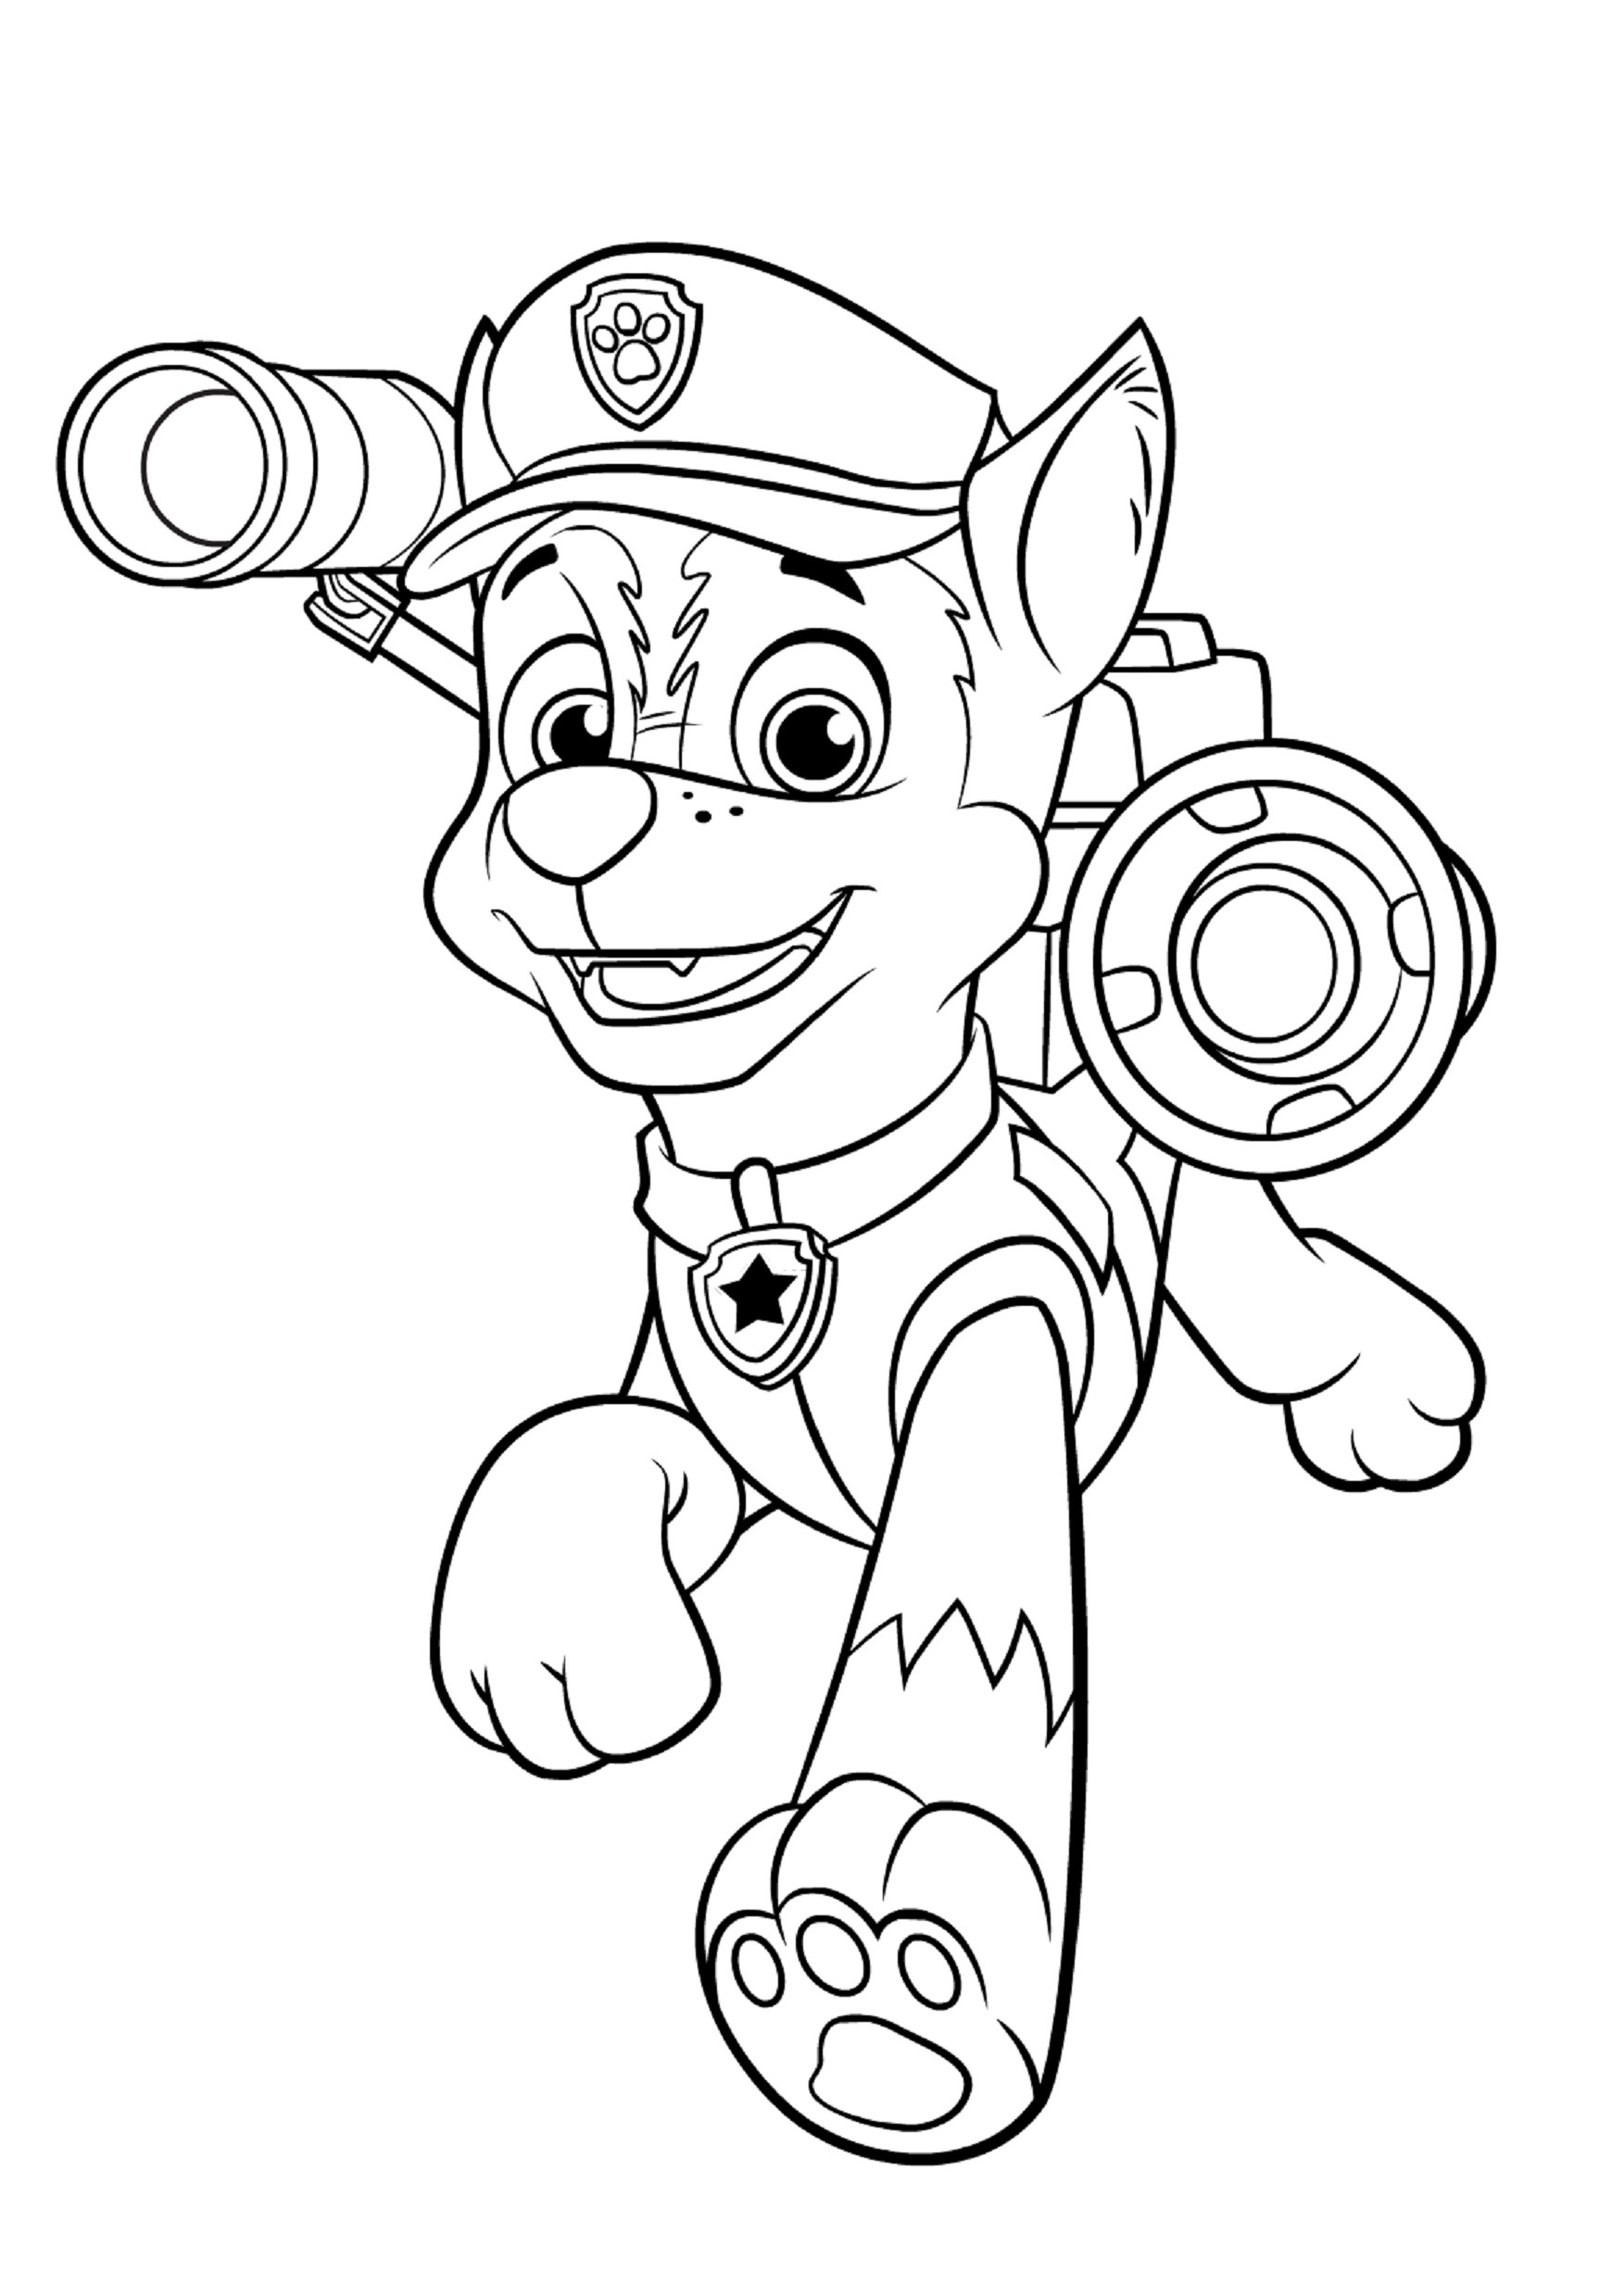 Paw Patrol Ausmalbilder Marshall : Chase Paw Patrol Drawing At Getdrawings Com Free For Personal Use